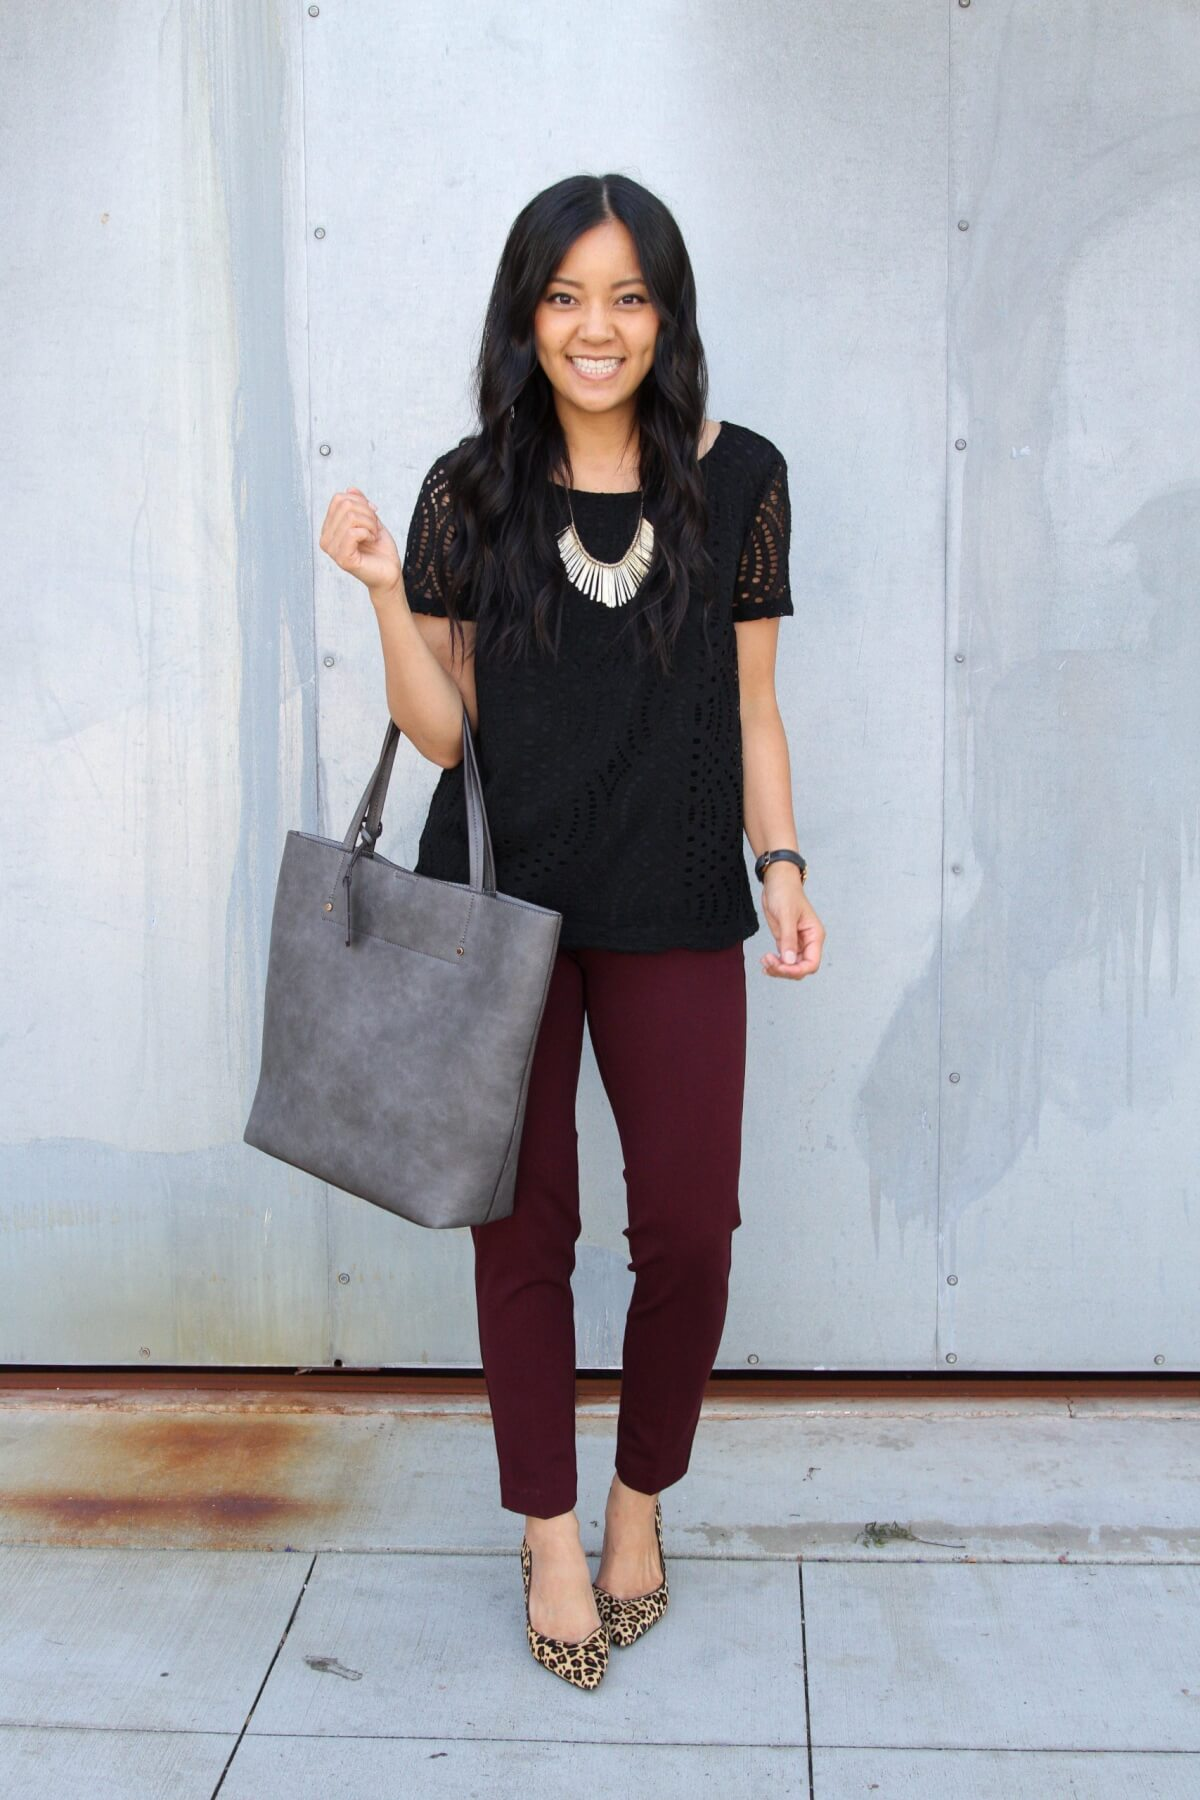 Business Casual Outfit: solid-colored top black blouse + maroon slacks + leopard heels + gold statement necklace + gold earrings + gray tote